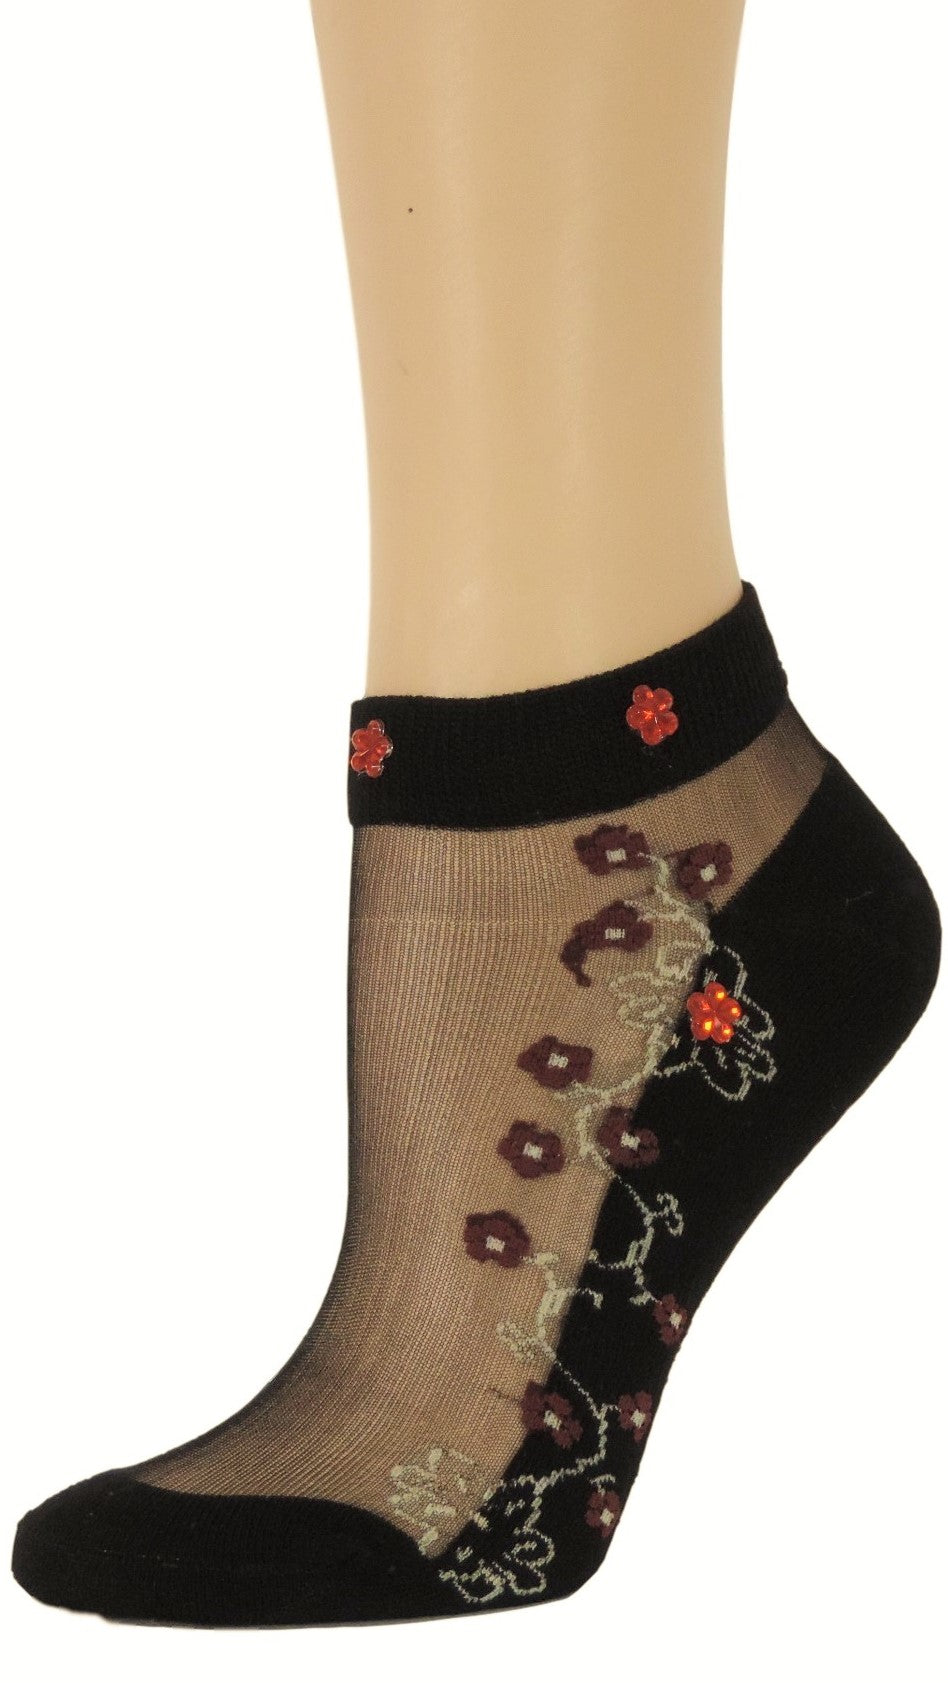 Maroon Flowers Ankle Custom Sheer Socks with beads